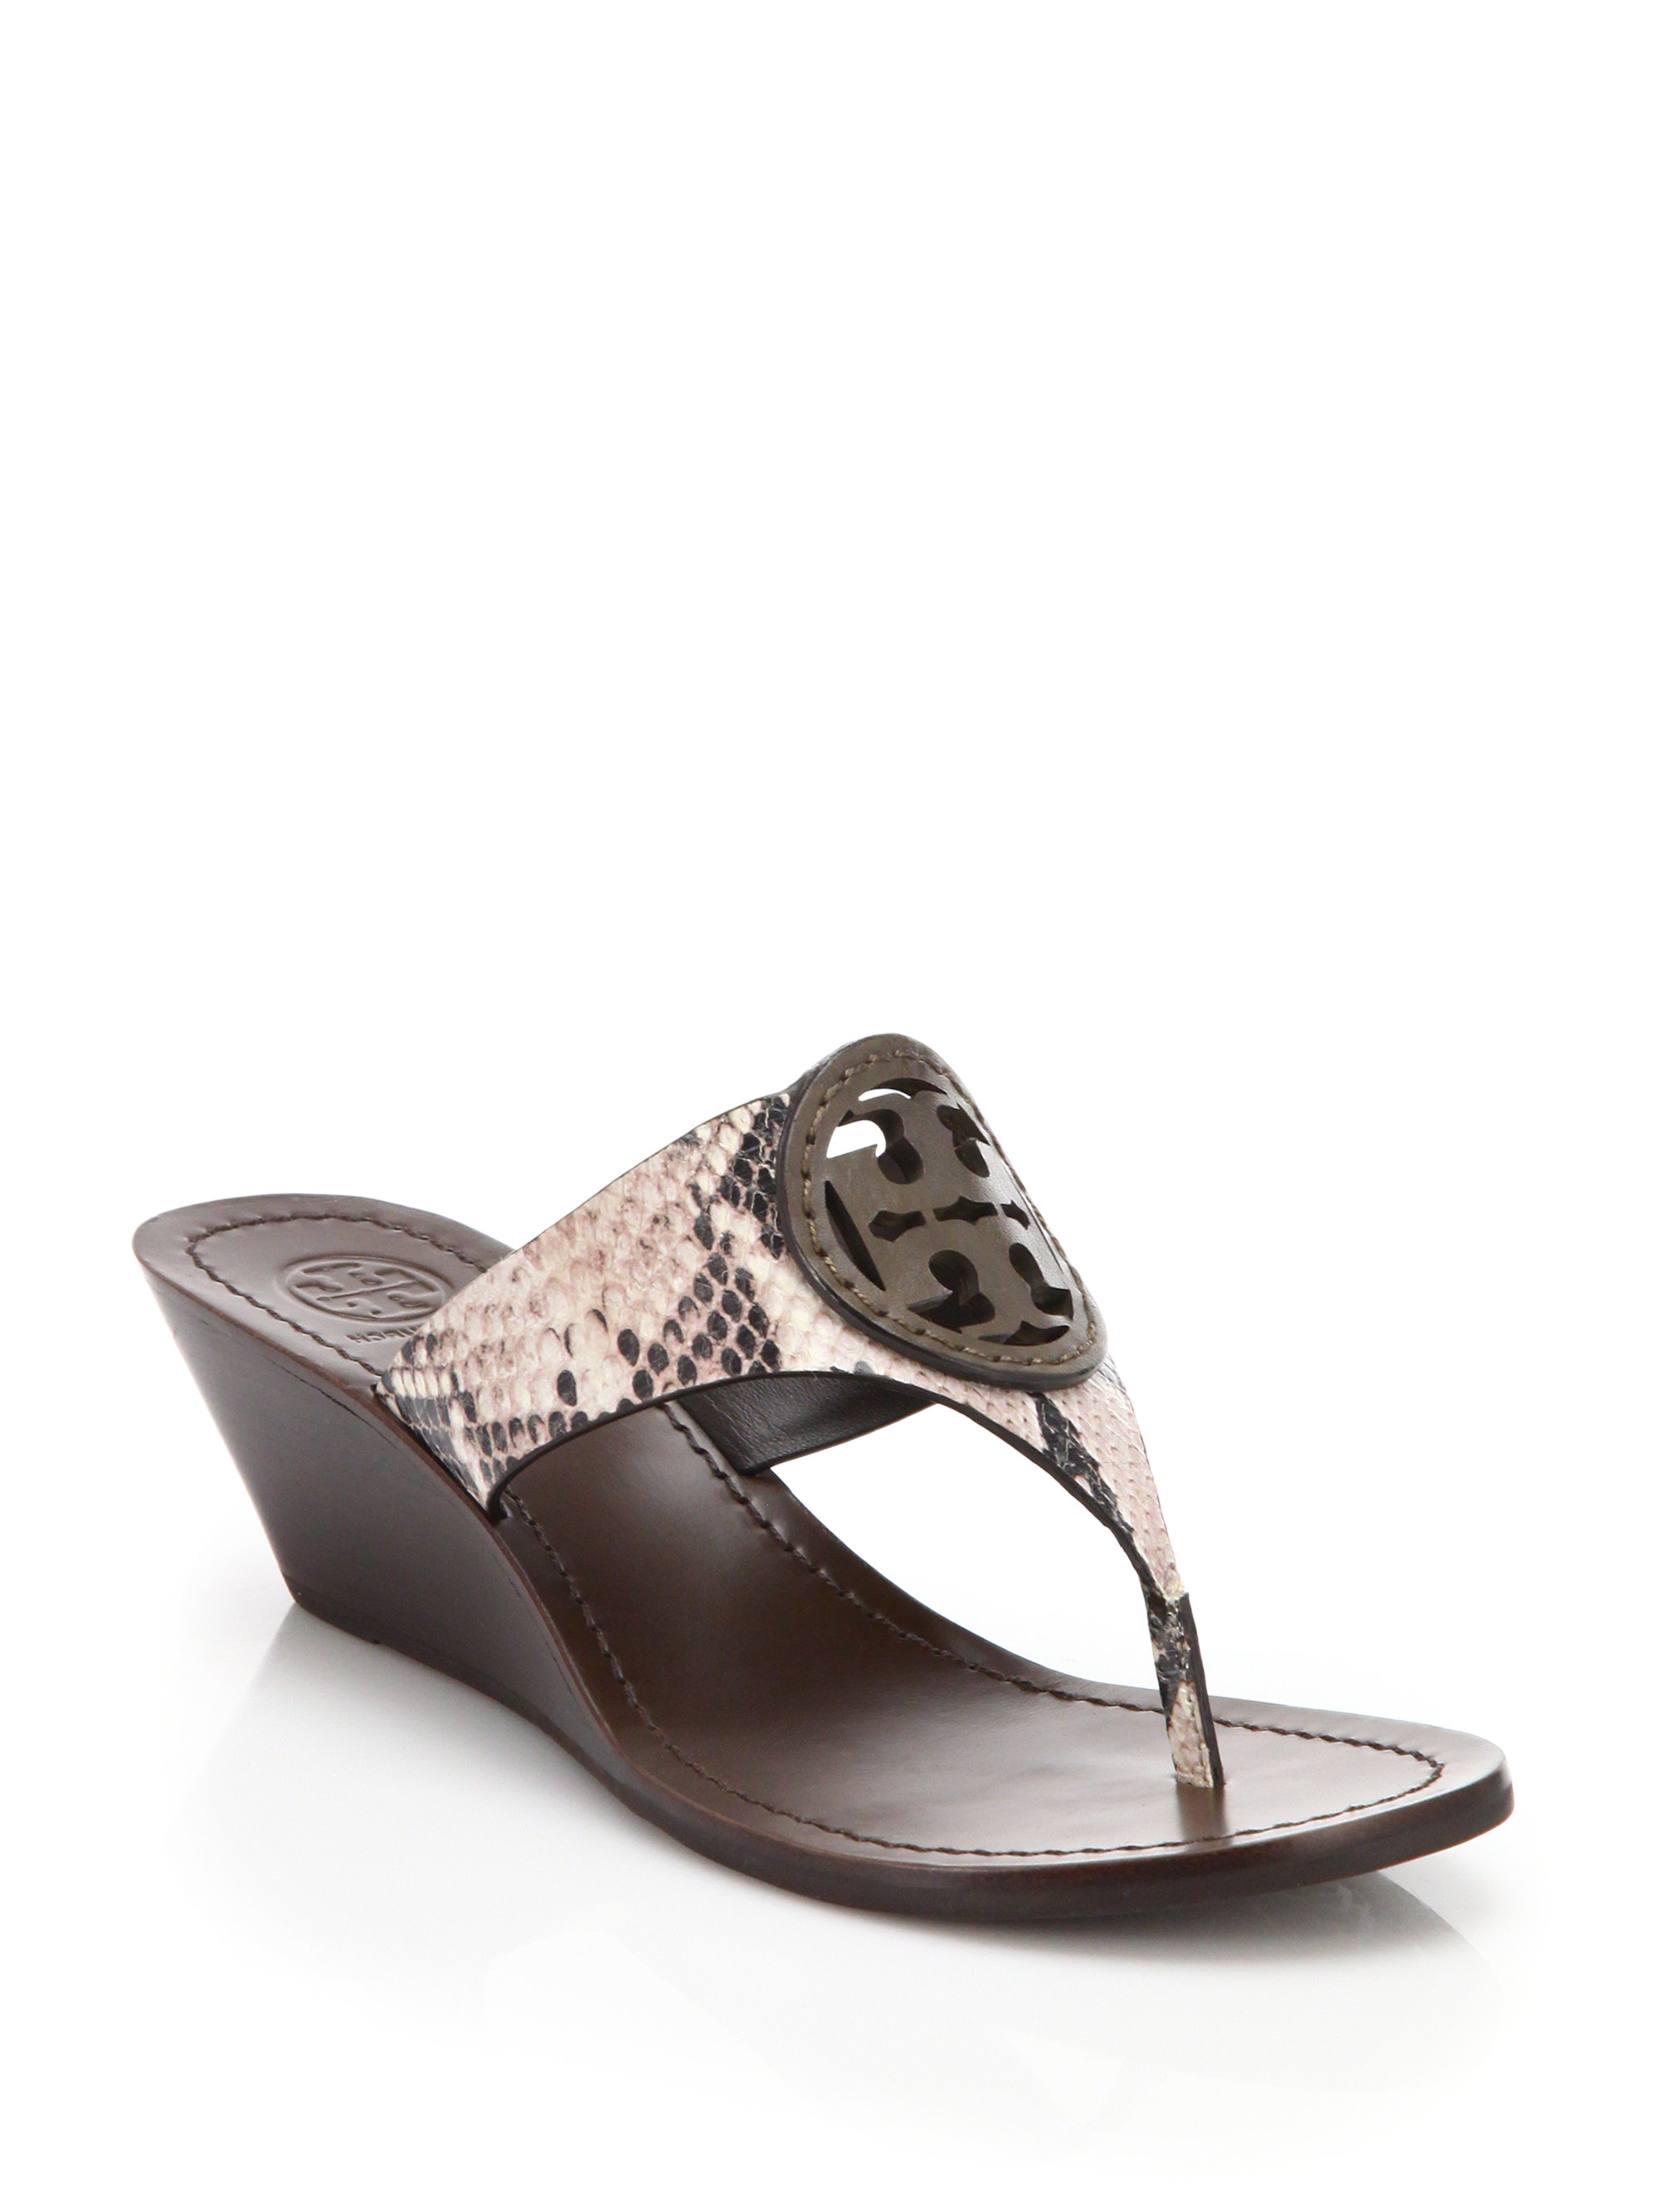 Tory Burch Louisa Snakeskin Embossed Leather Thong Wedge